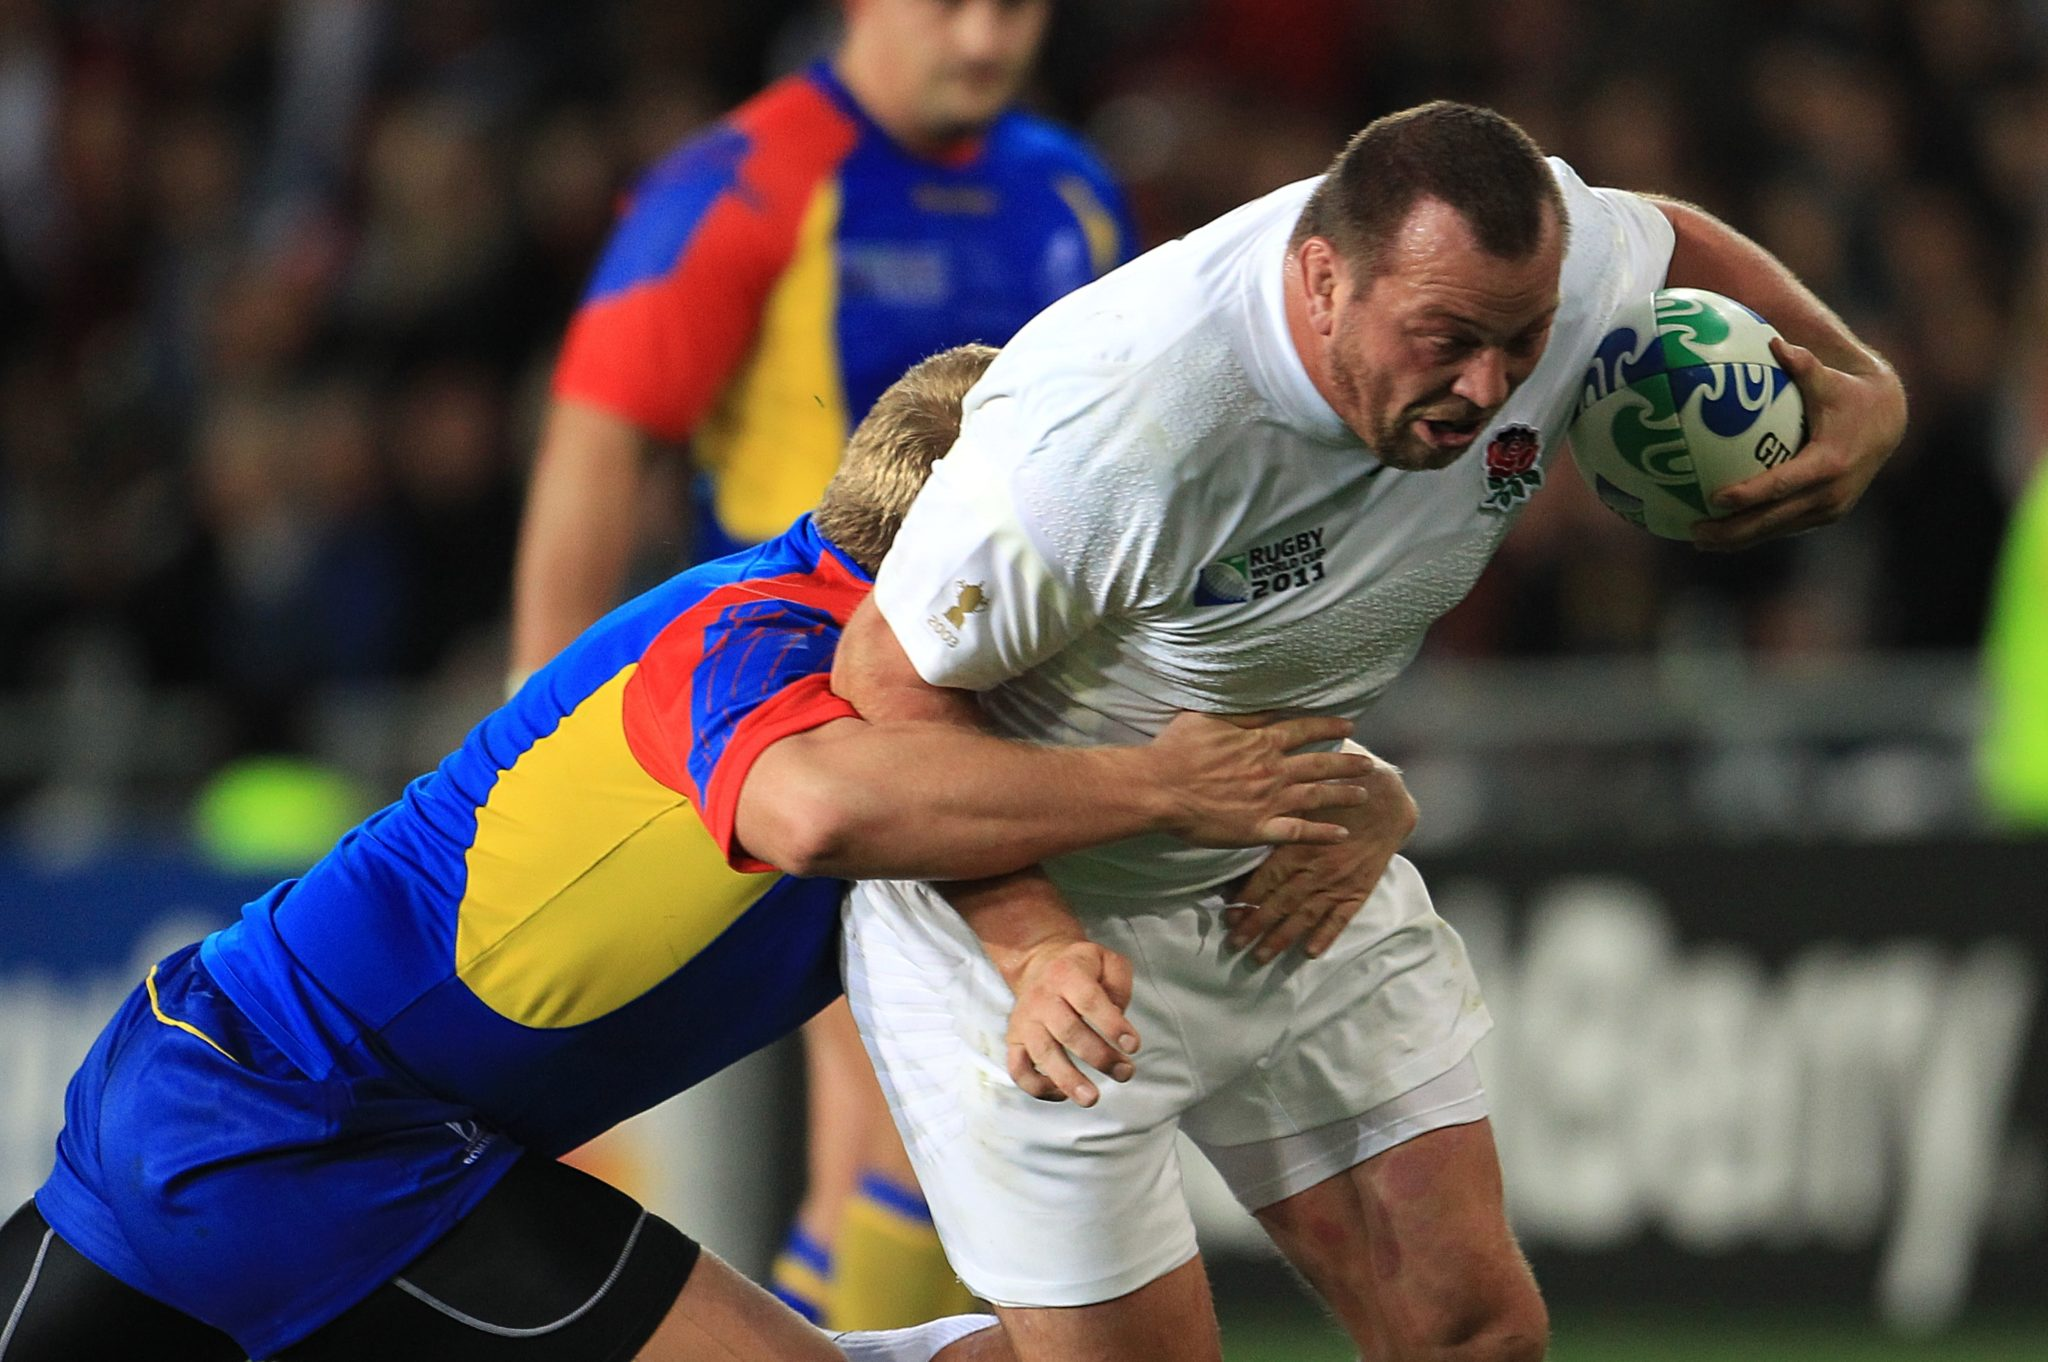 England rugby player Steve Thompson evades a tackle